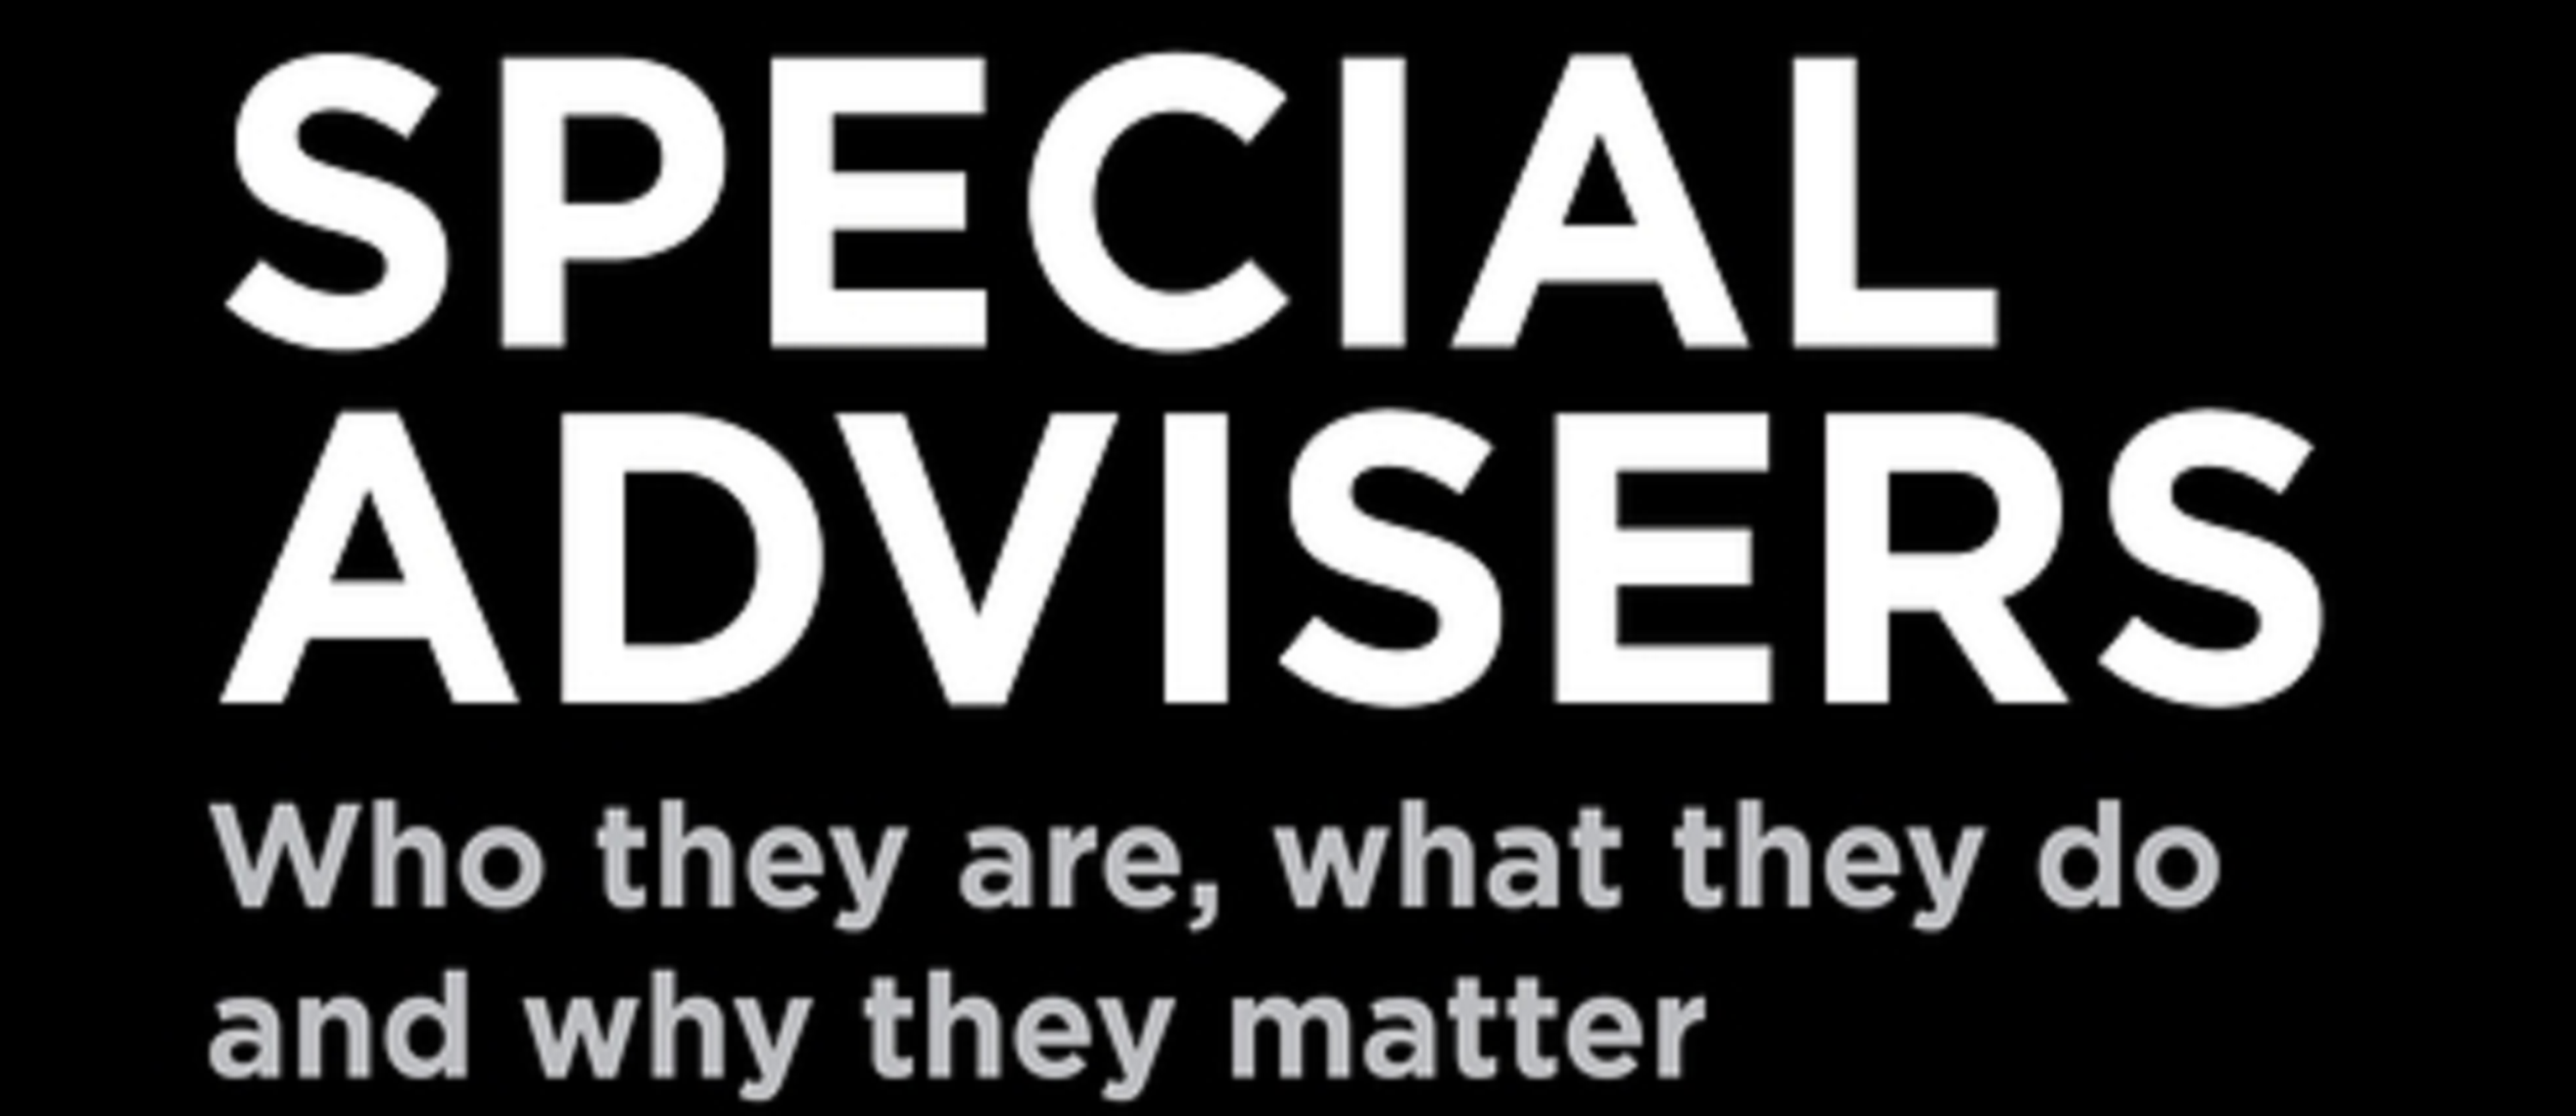 Special Advisers